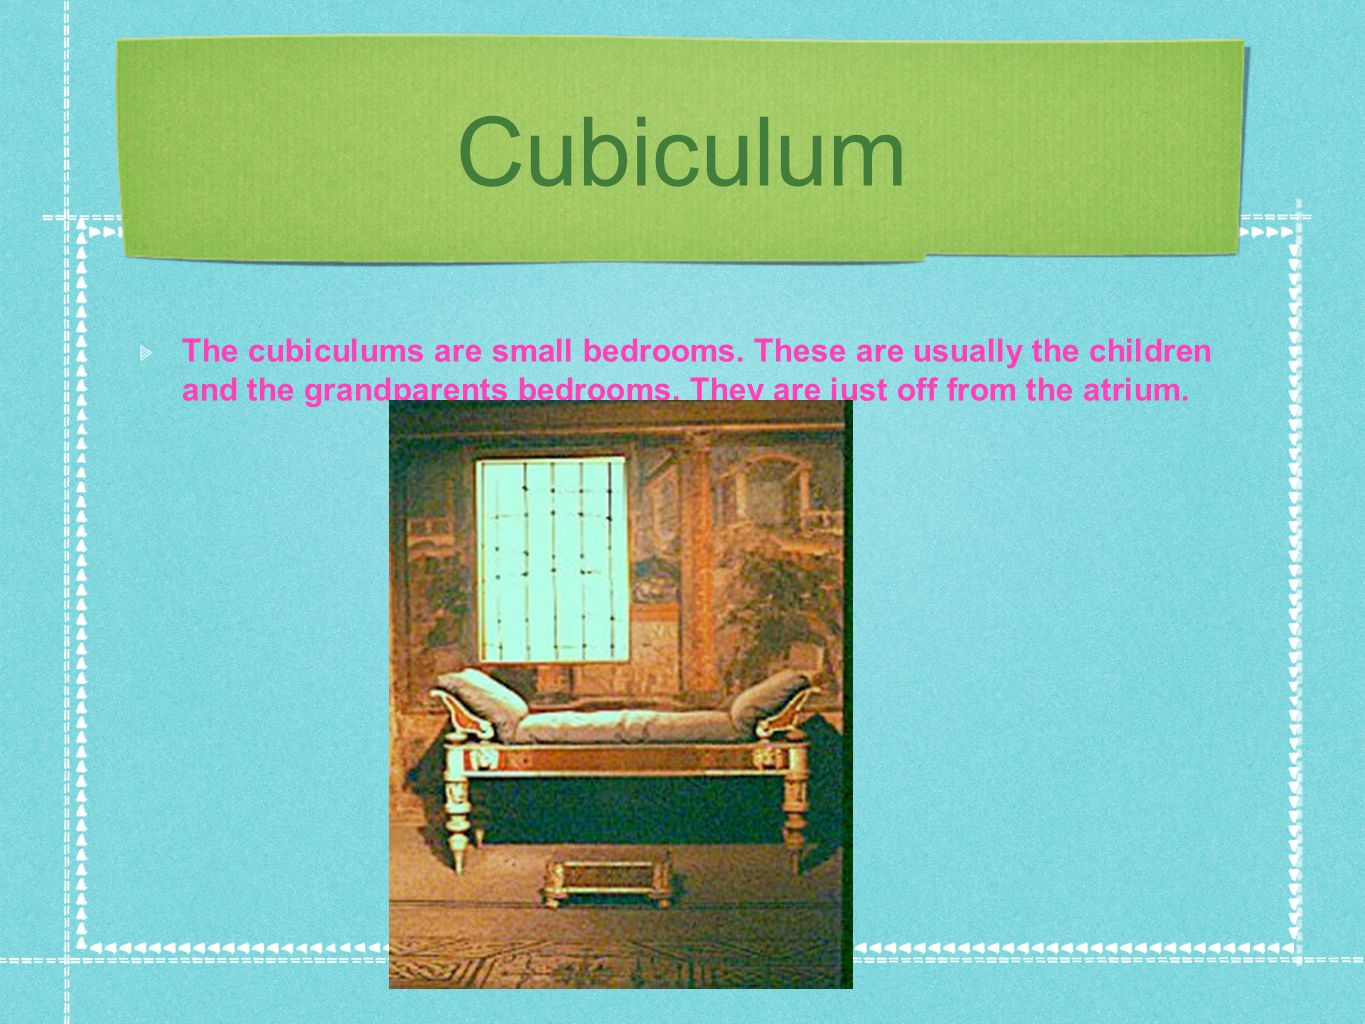 Cubiculum The cubiculums are small bedrooms. These are usually the children and the grandparents bedrooms. They are just off from the atrium.